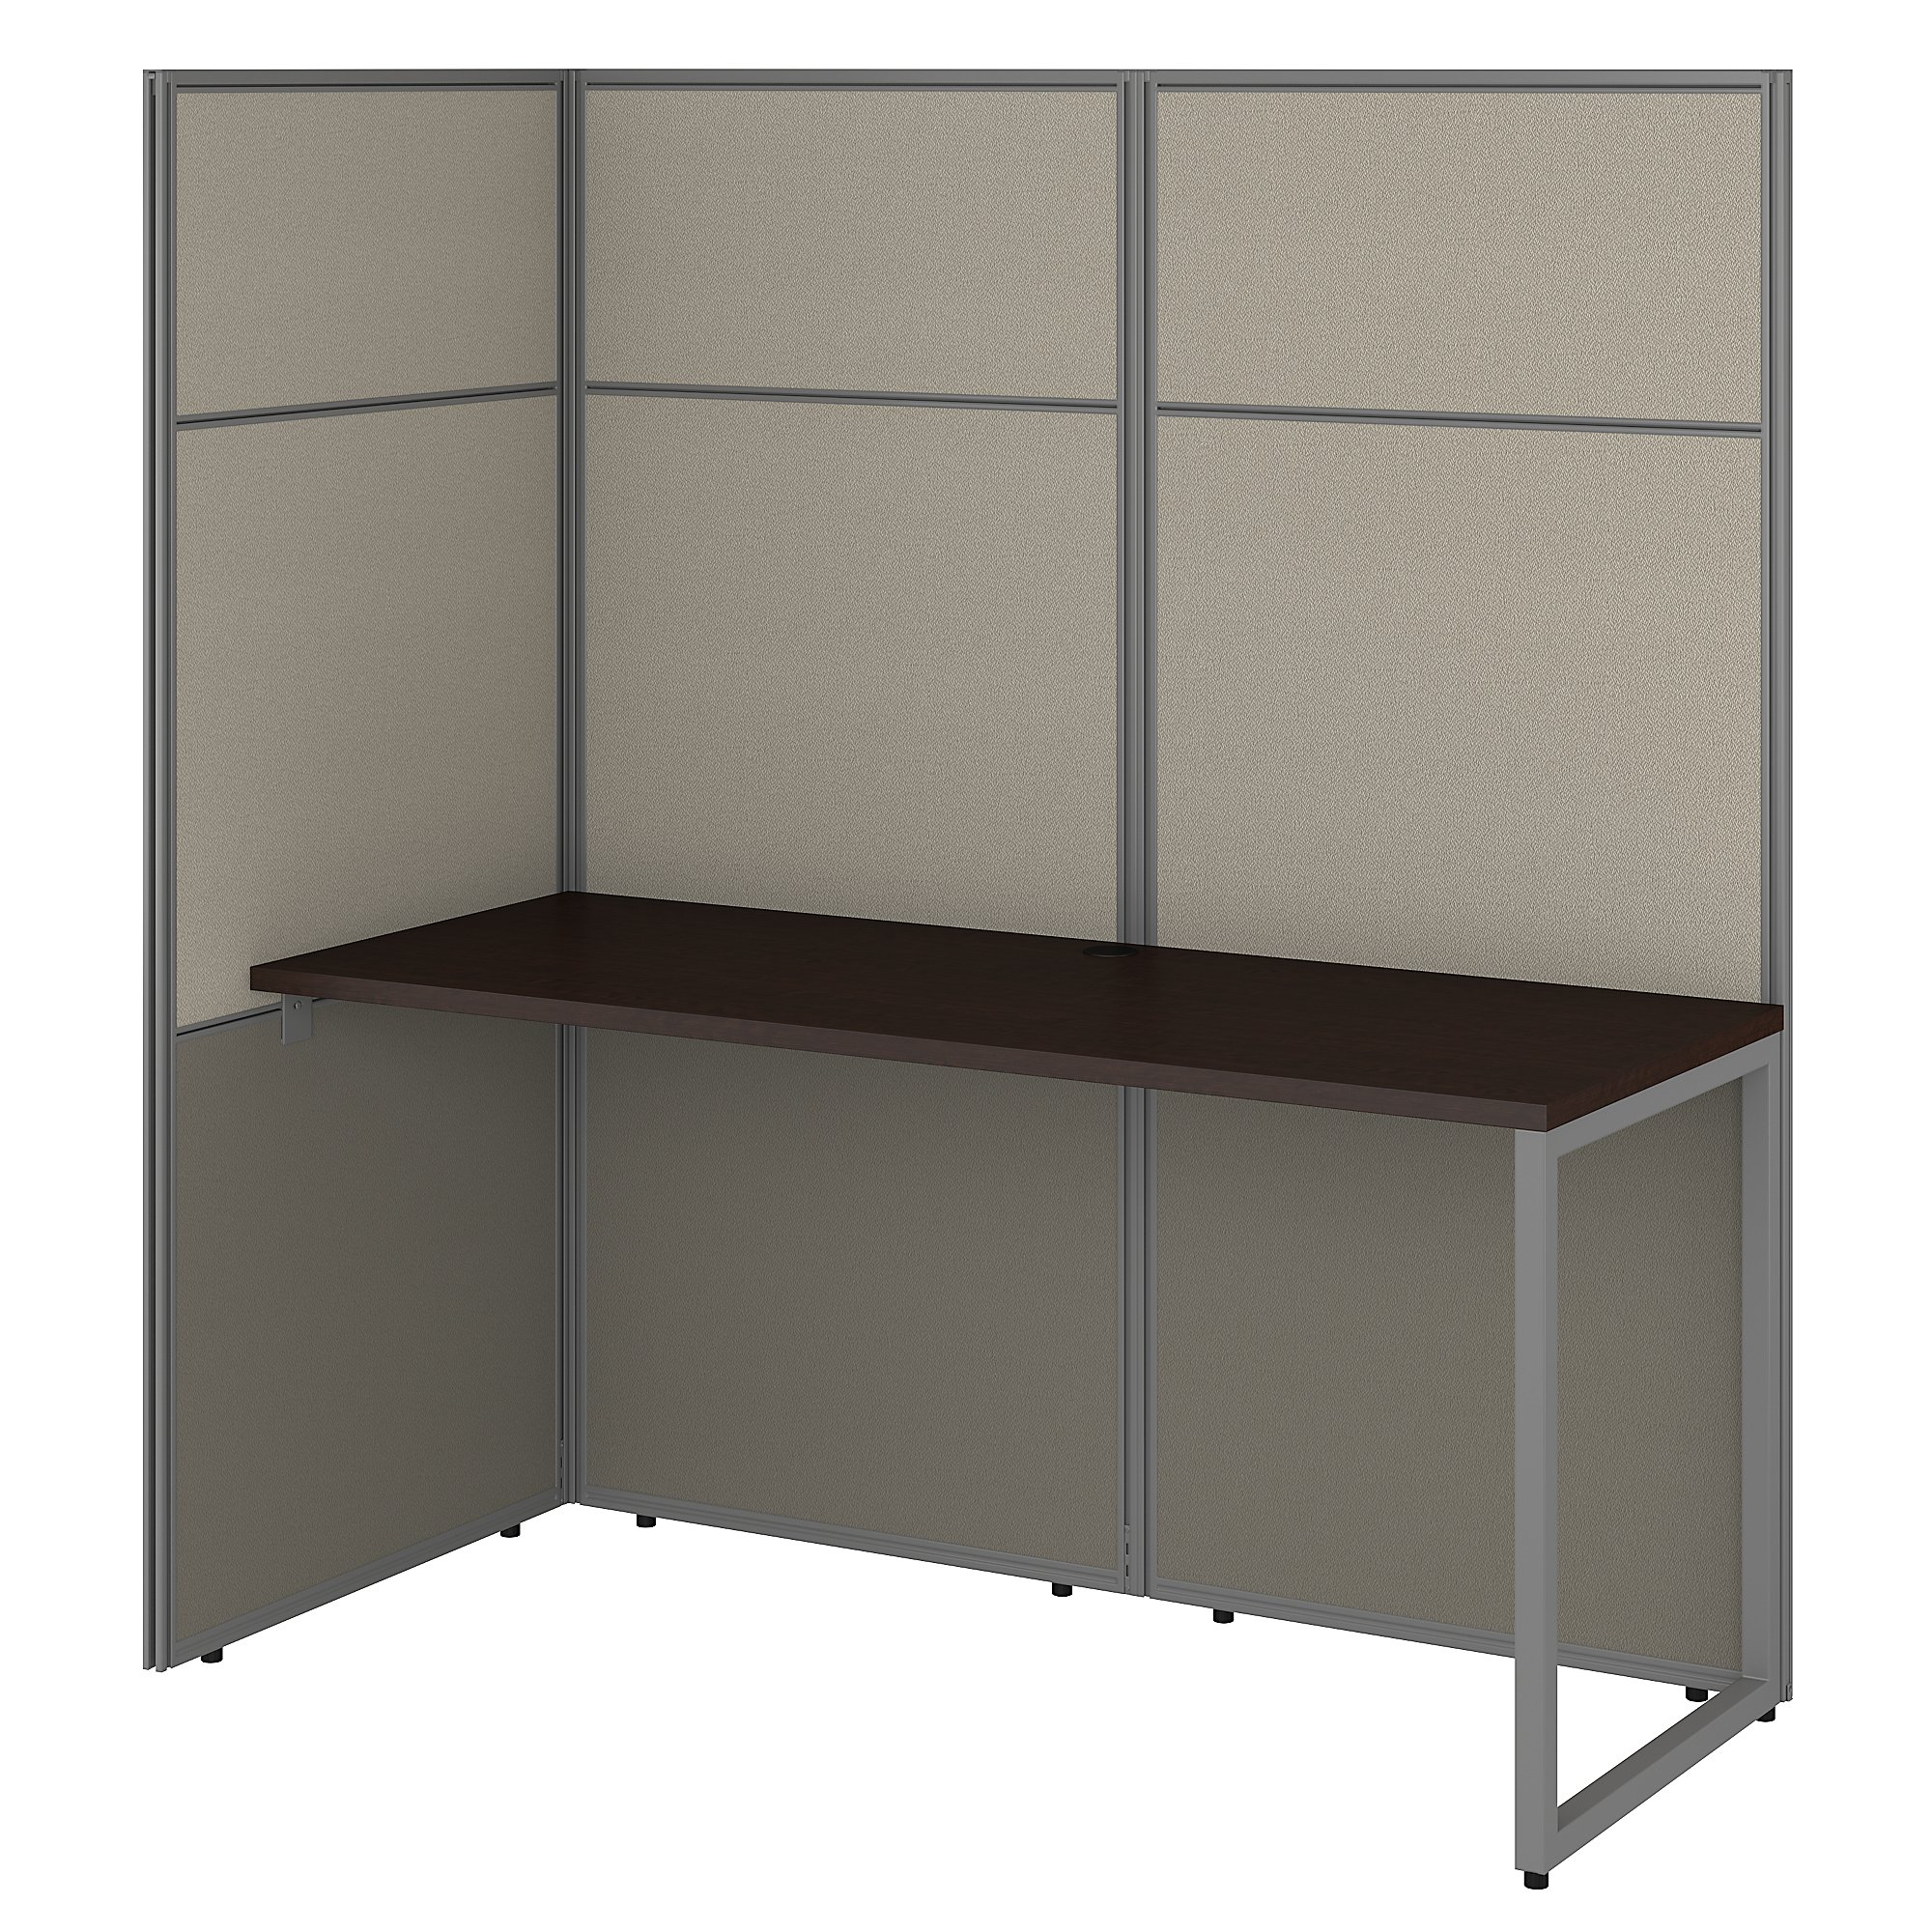 open concept single user cubicle